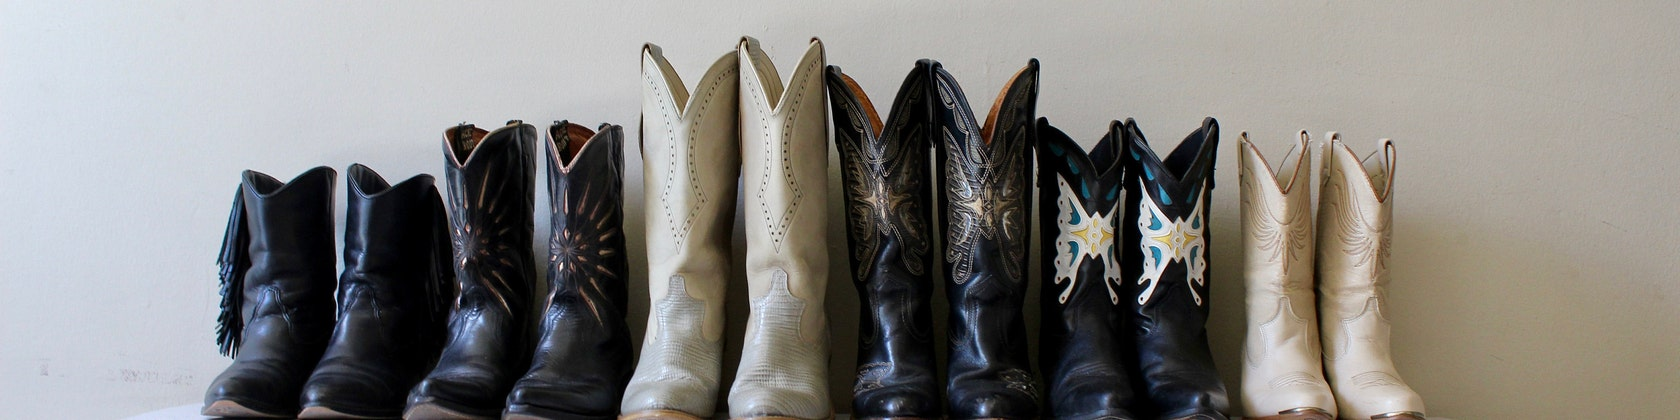 Women\'s Vintage Clothing and Cowboy Boots von AttackHeartVintage